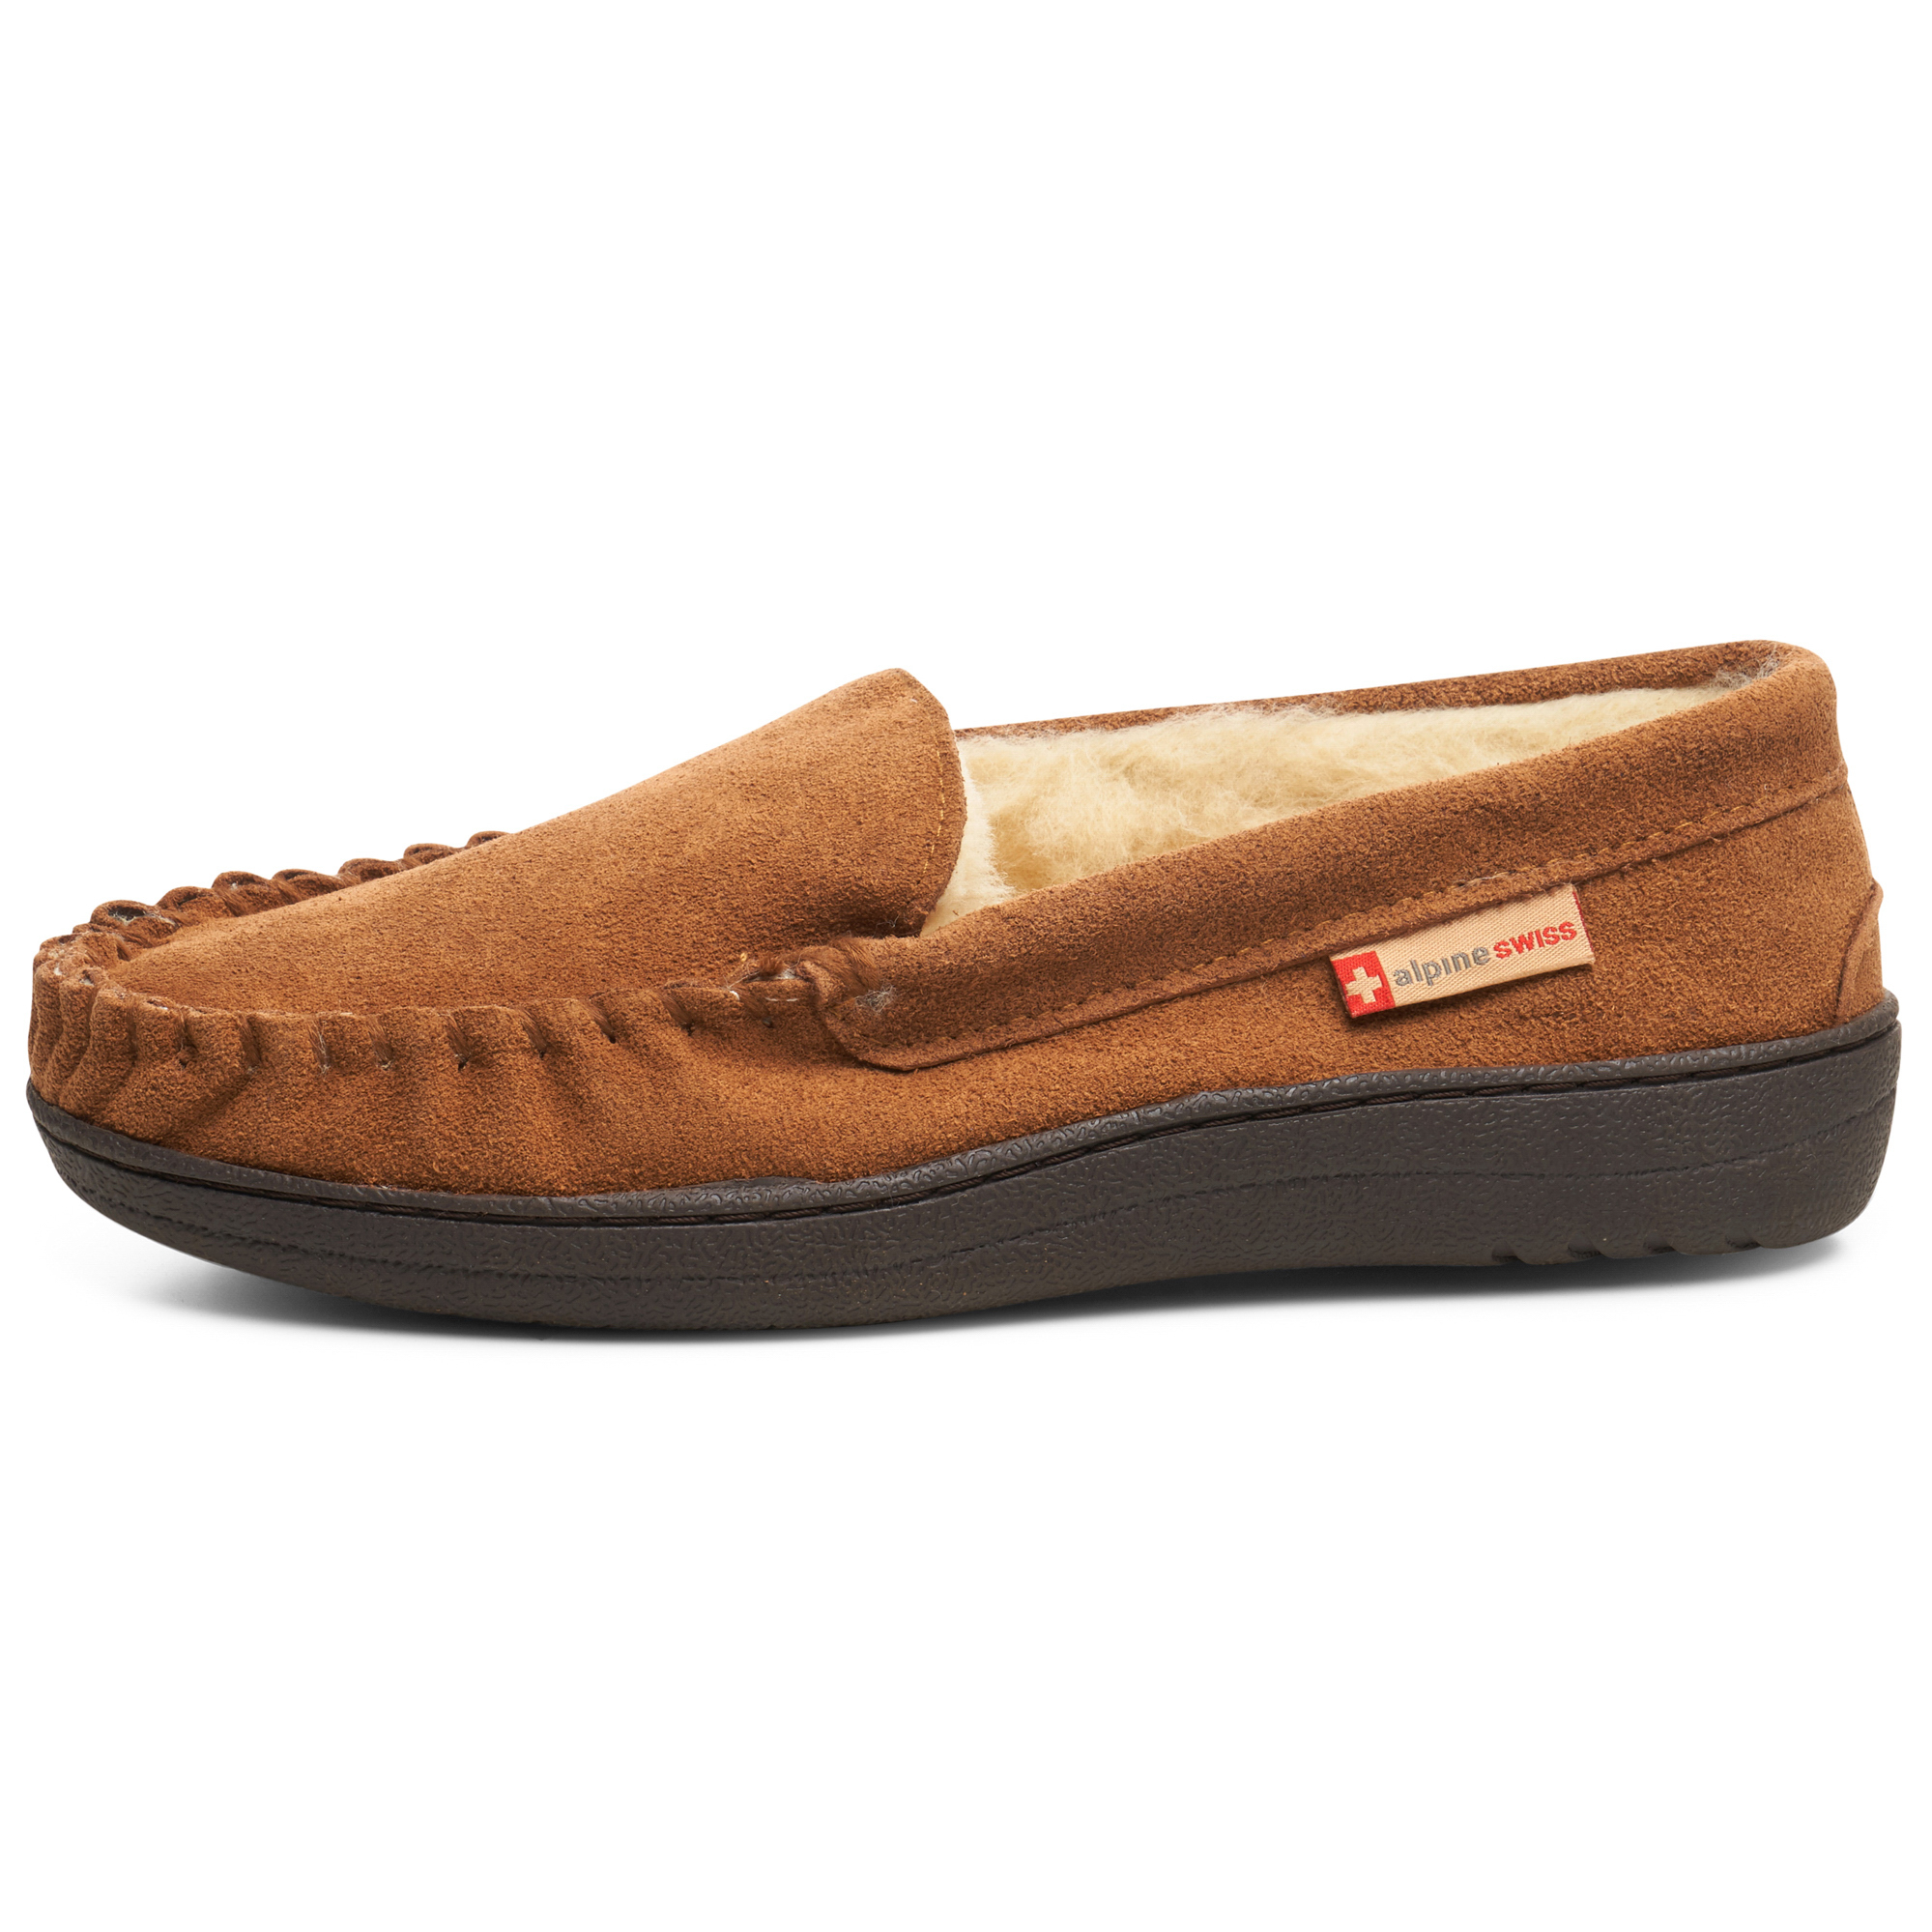 thumbnail 19 - Alpine-Swiss-Yukon-Mens-Suede-Shearling-Moccasin-Slippers-Moc-Toe-Slip-On-Shoes